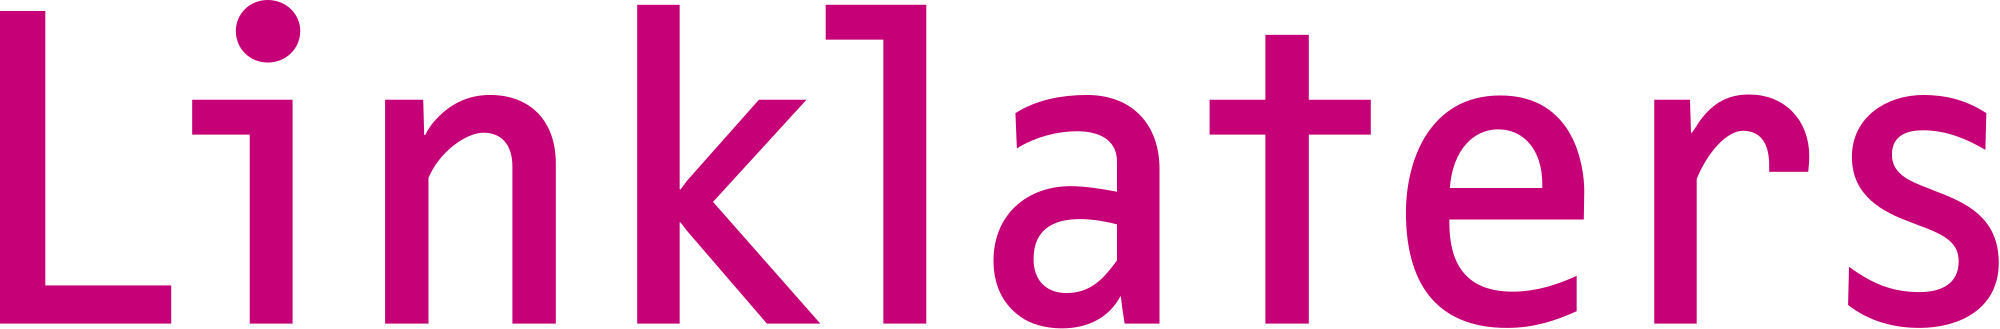 Linklaters_Logo2018